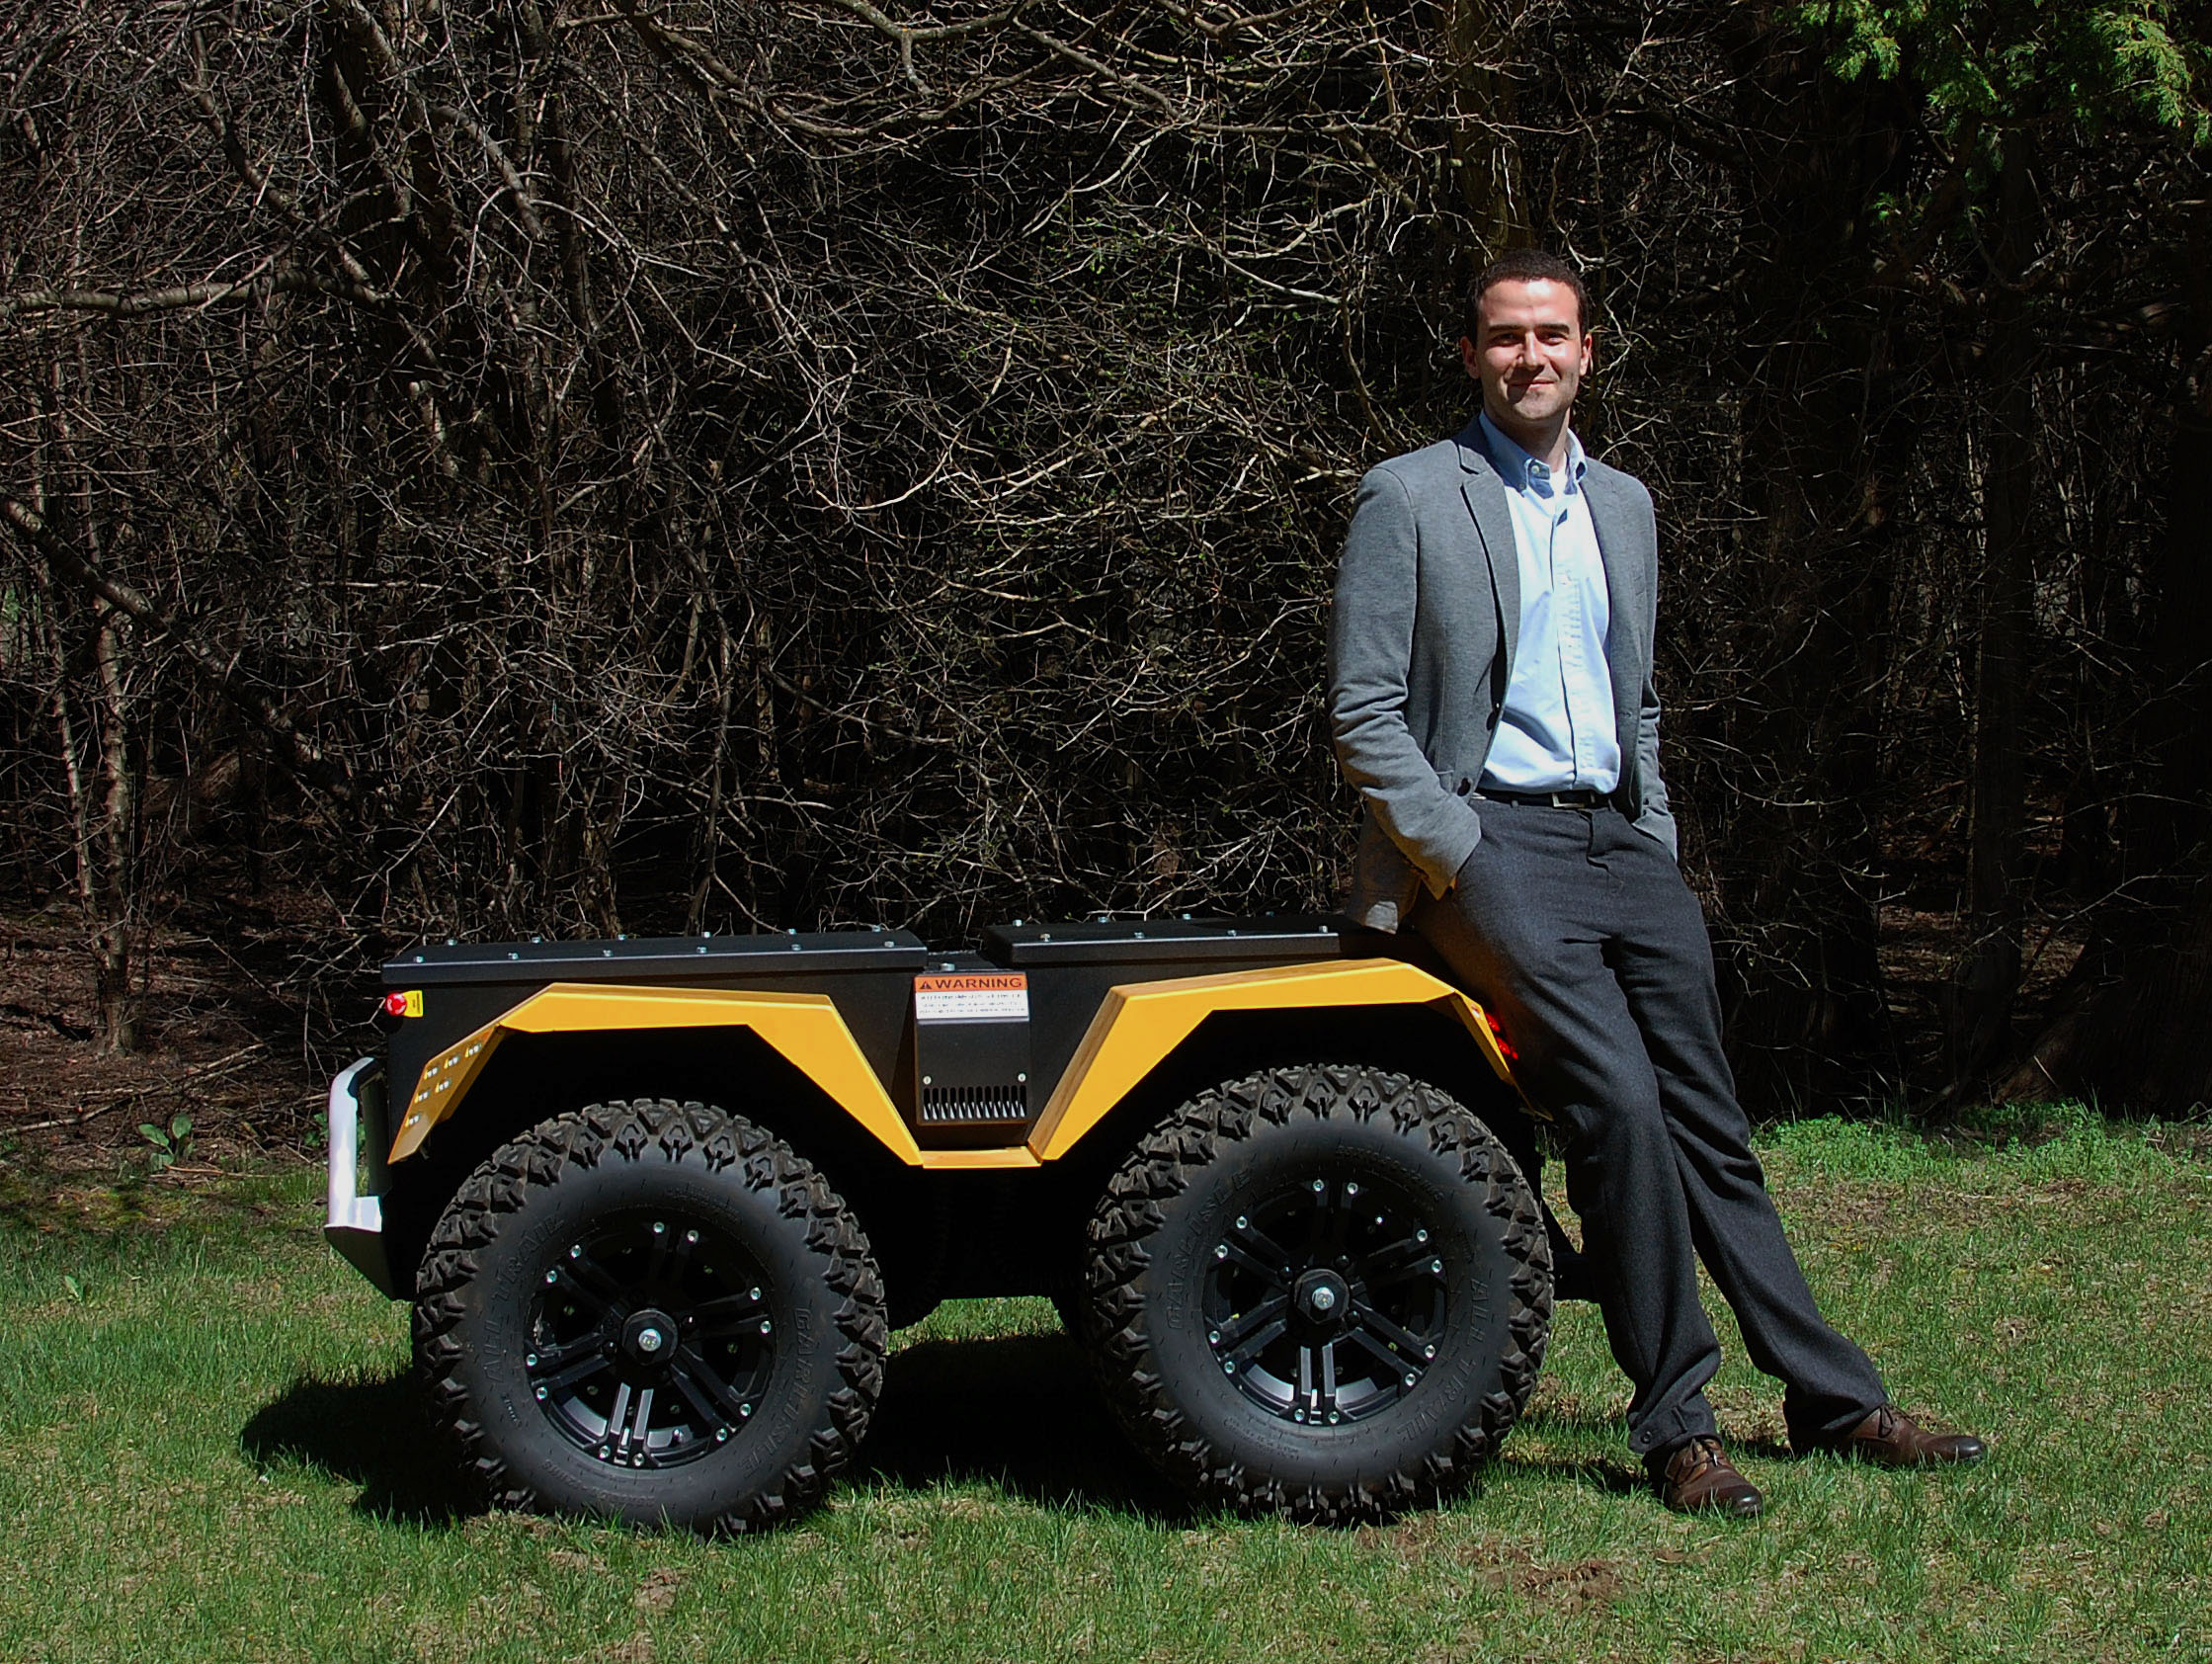 Matt Rendall, Clearpath Co-founder and CEO pictured with one of their robots.